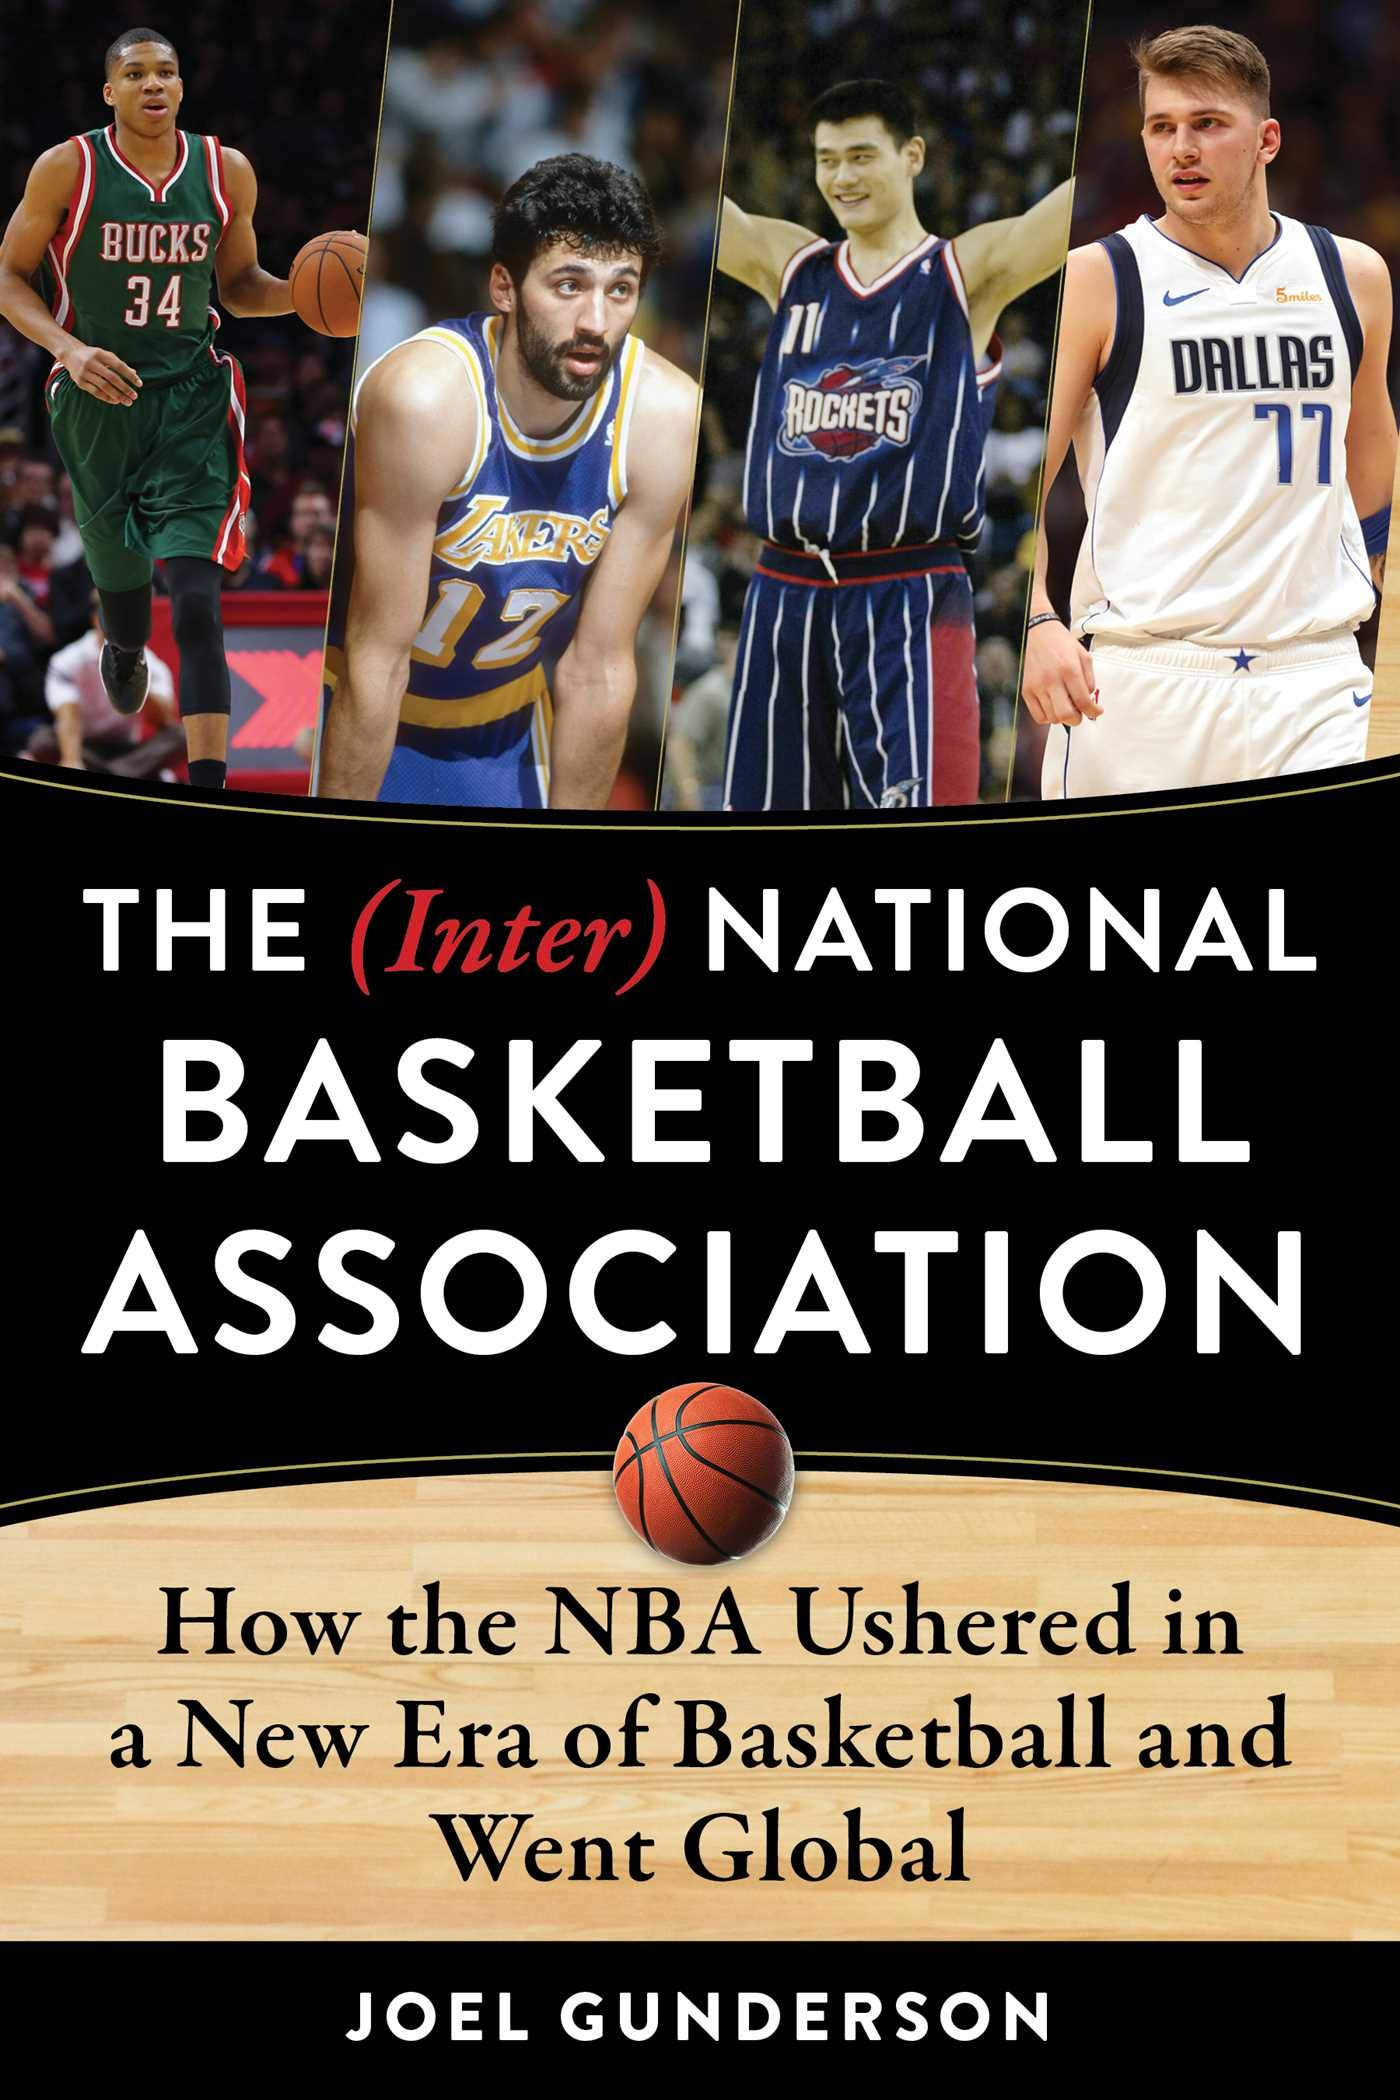 The (Inter) National Basketball Association: How the NBA Ushered in a New Era of Basketball and Went Global Joel Gunderson